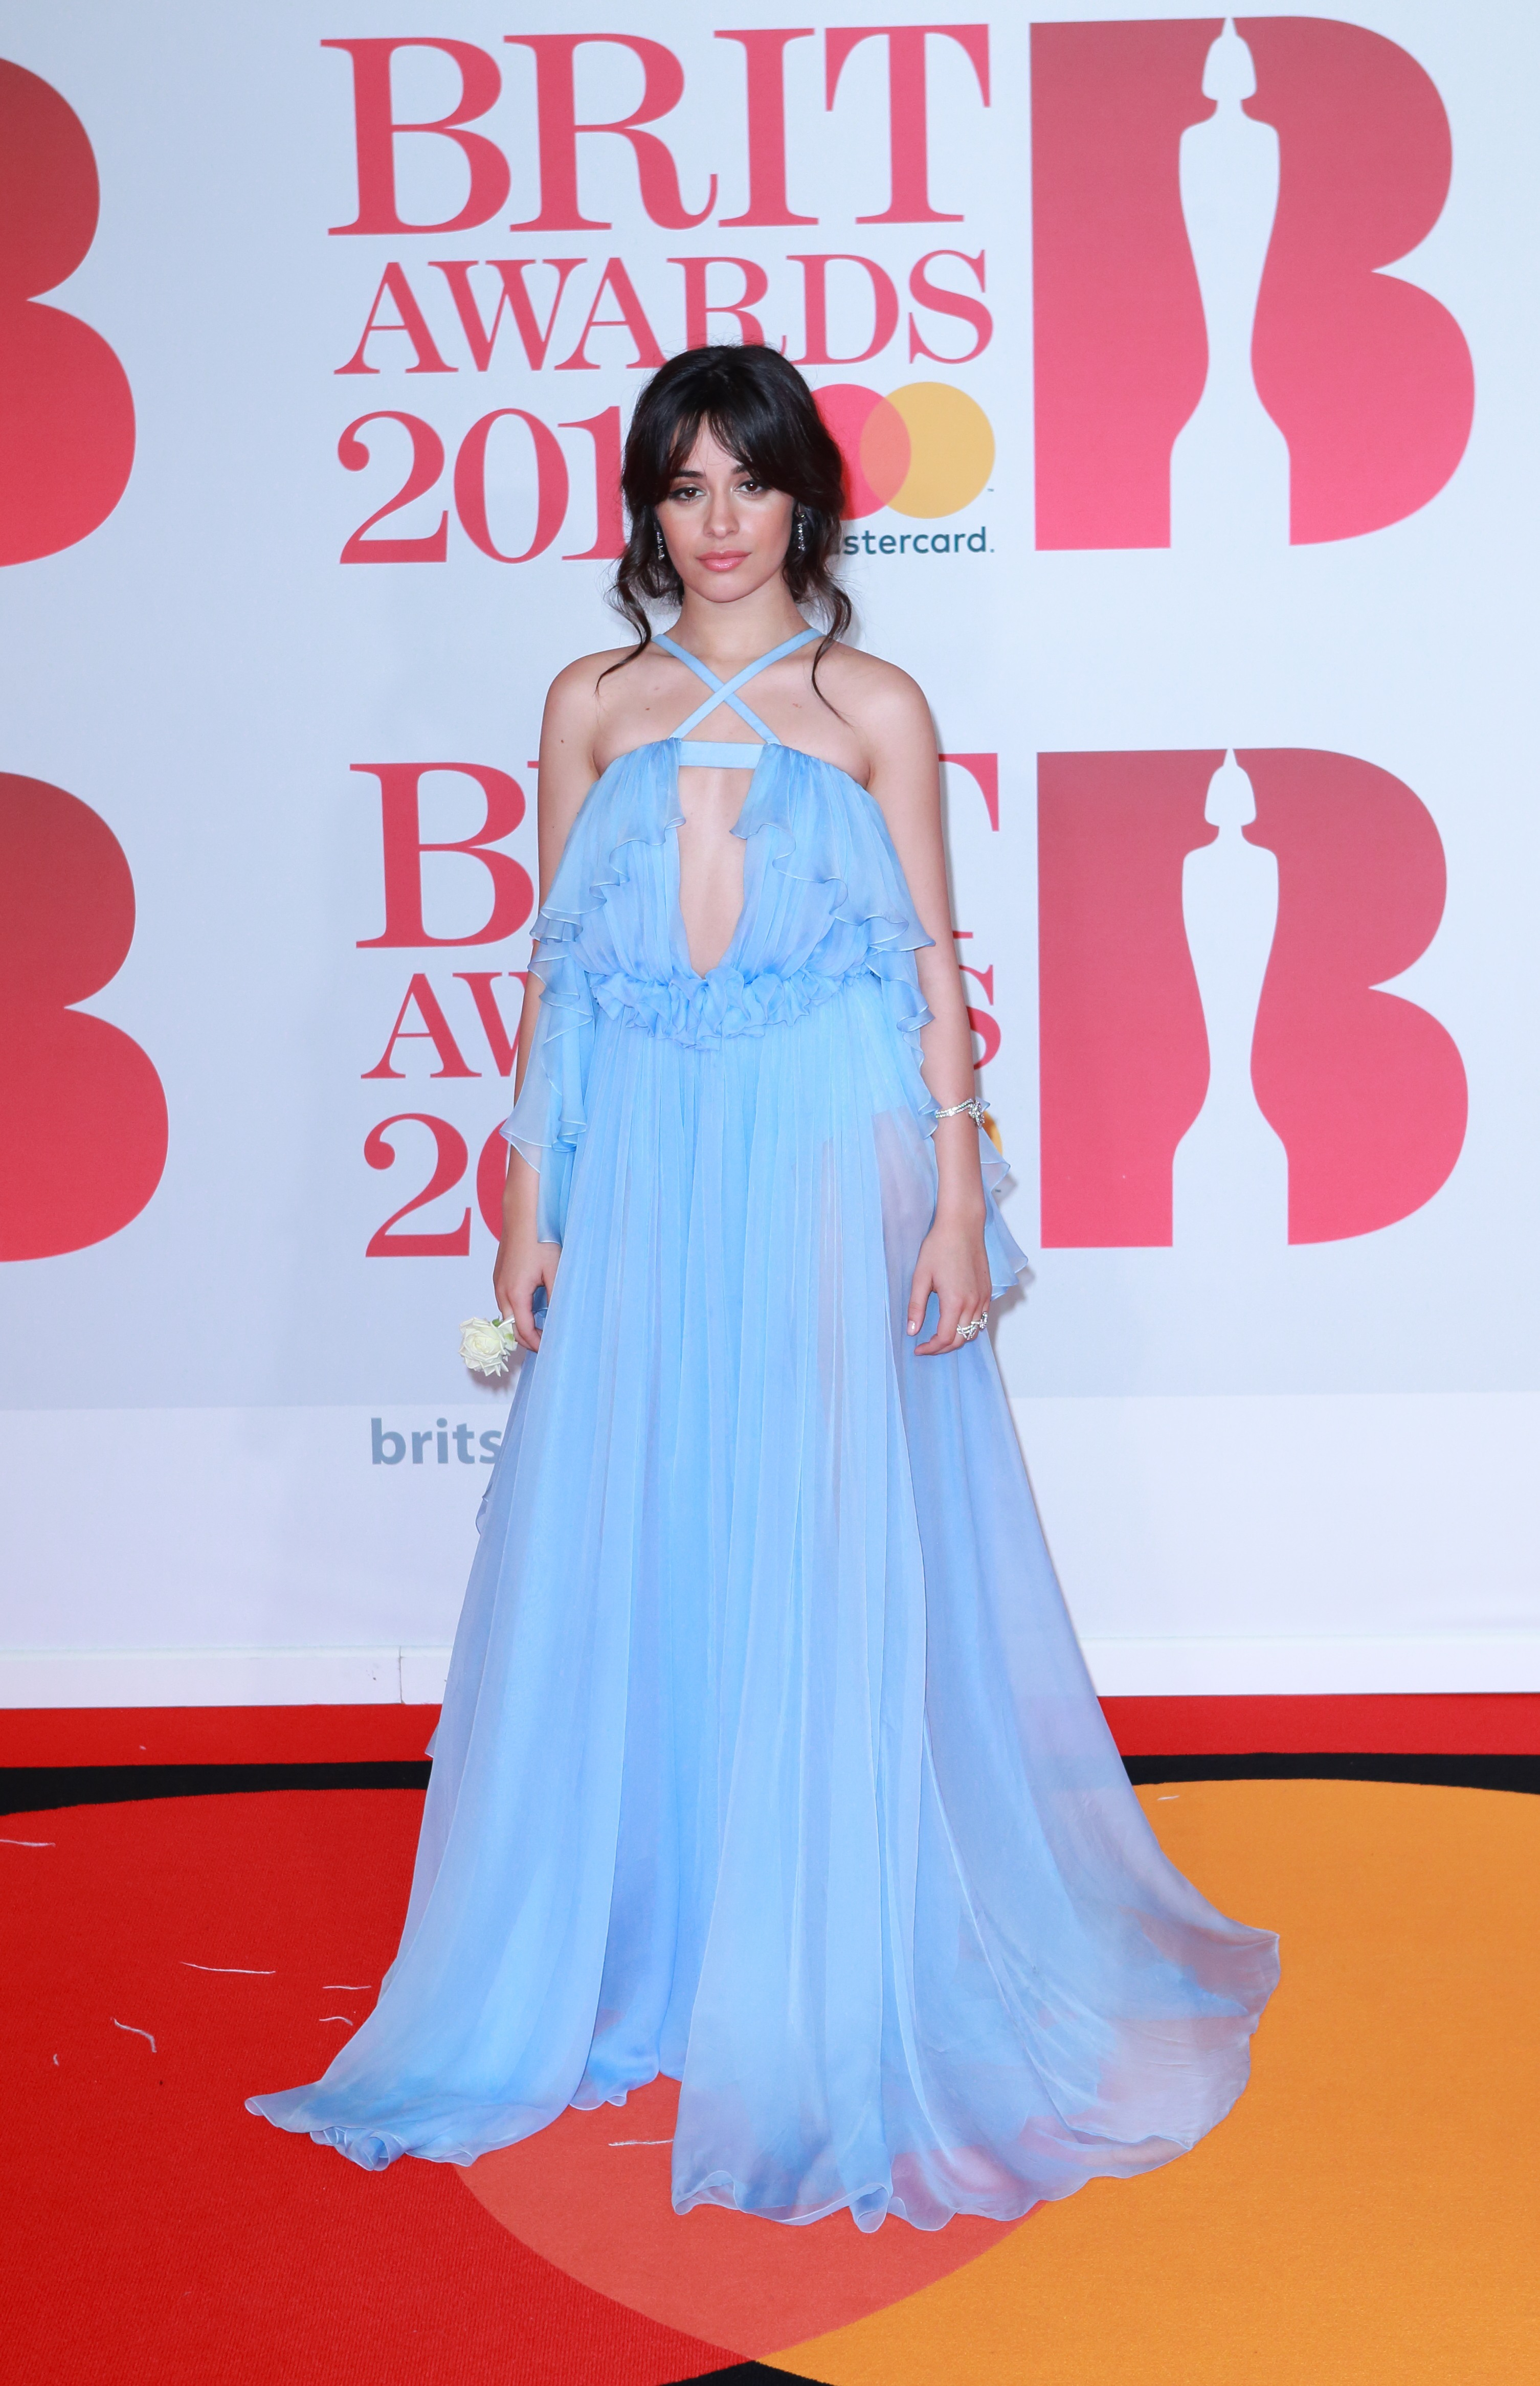 Celebrities arrive on the red carpet for the  BRIT Awards 2018 at the O2 in London, England, UK.       <P> Pictured: Camilla Cabello <B>Ref: SPL1662521  210218  </B><BR/> Picture by: Flynet - Splash News<BR/> </P><P> <B>Splash News and Pictures</B><BR/> Los Angeles:	310-821-2666<BR/> New York:	212-619-2666<BR/> London:	870-934-2666<BR/> <span id=